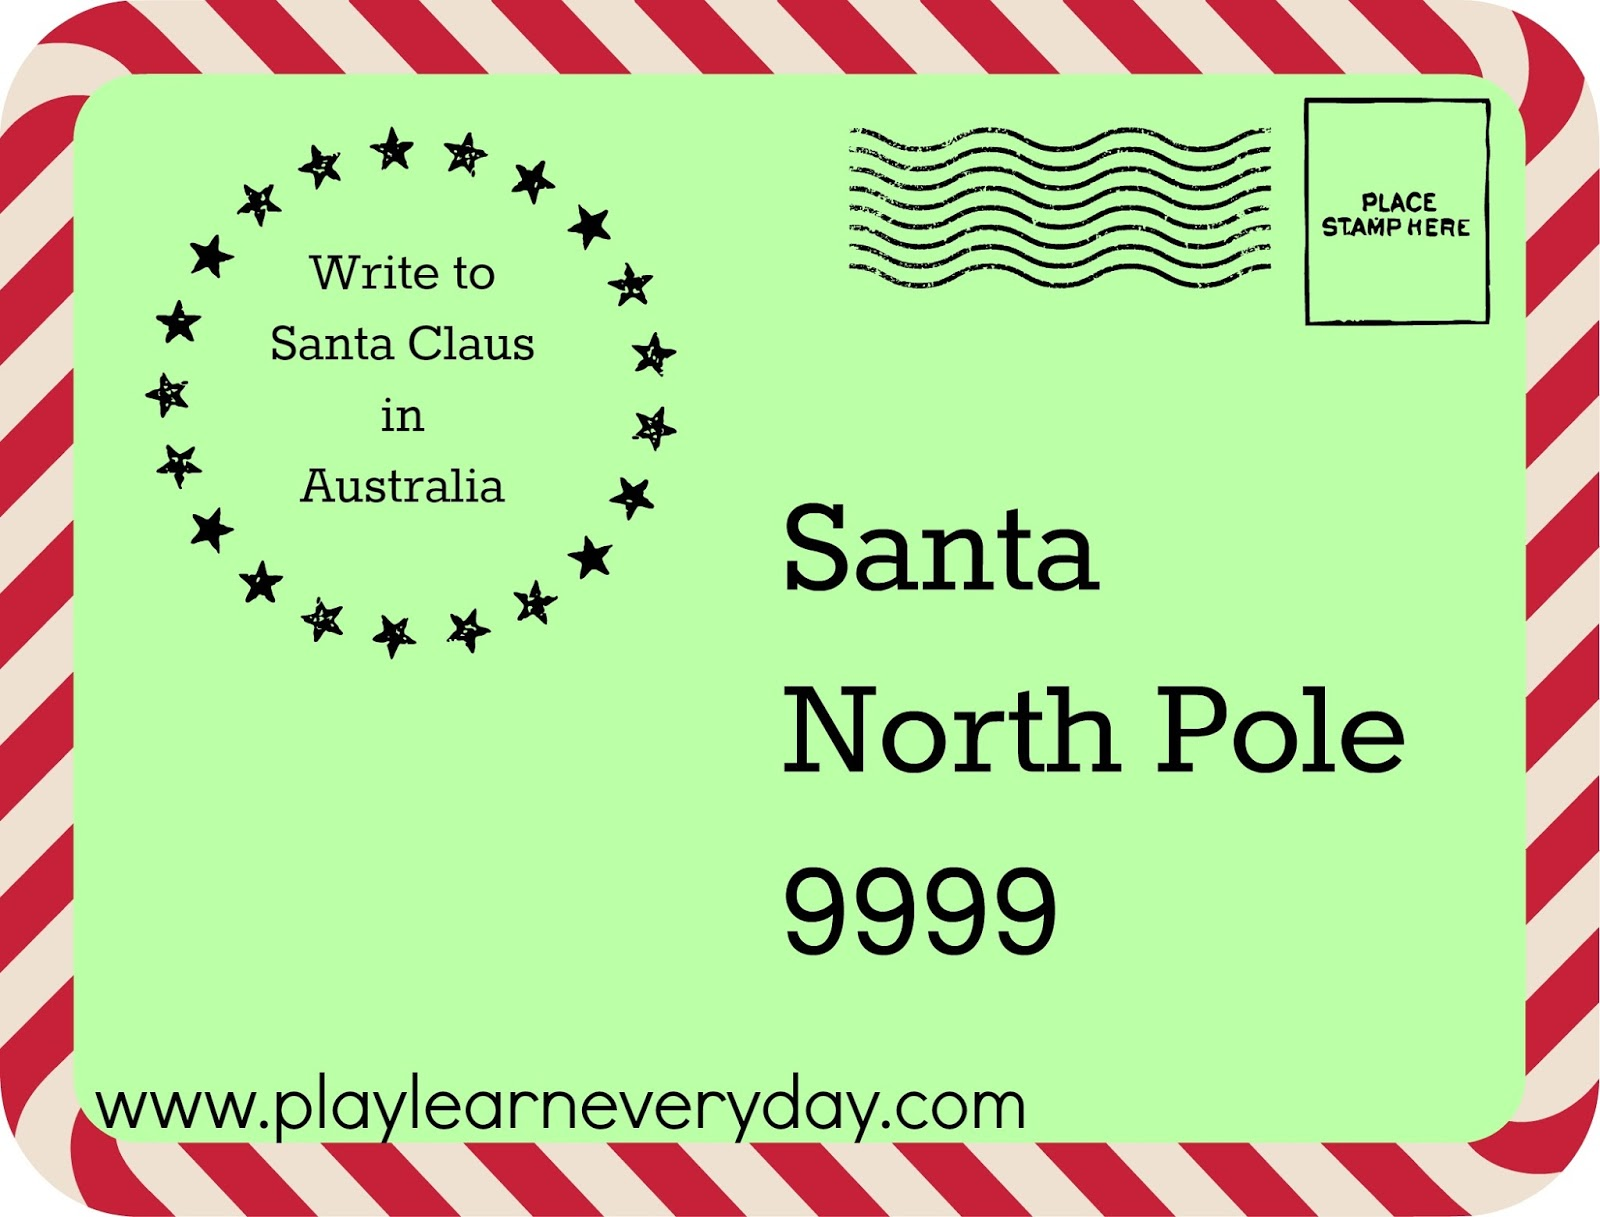 send letter to santa Pinep handshakeapp